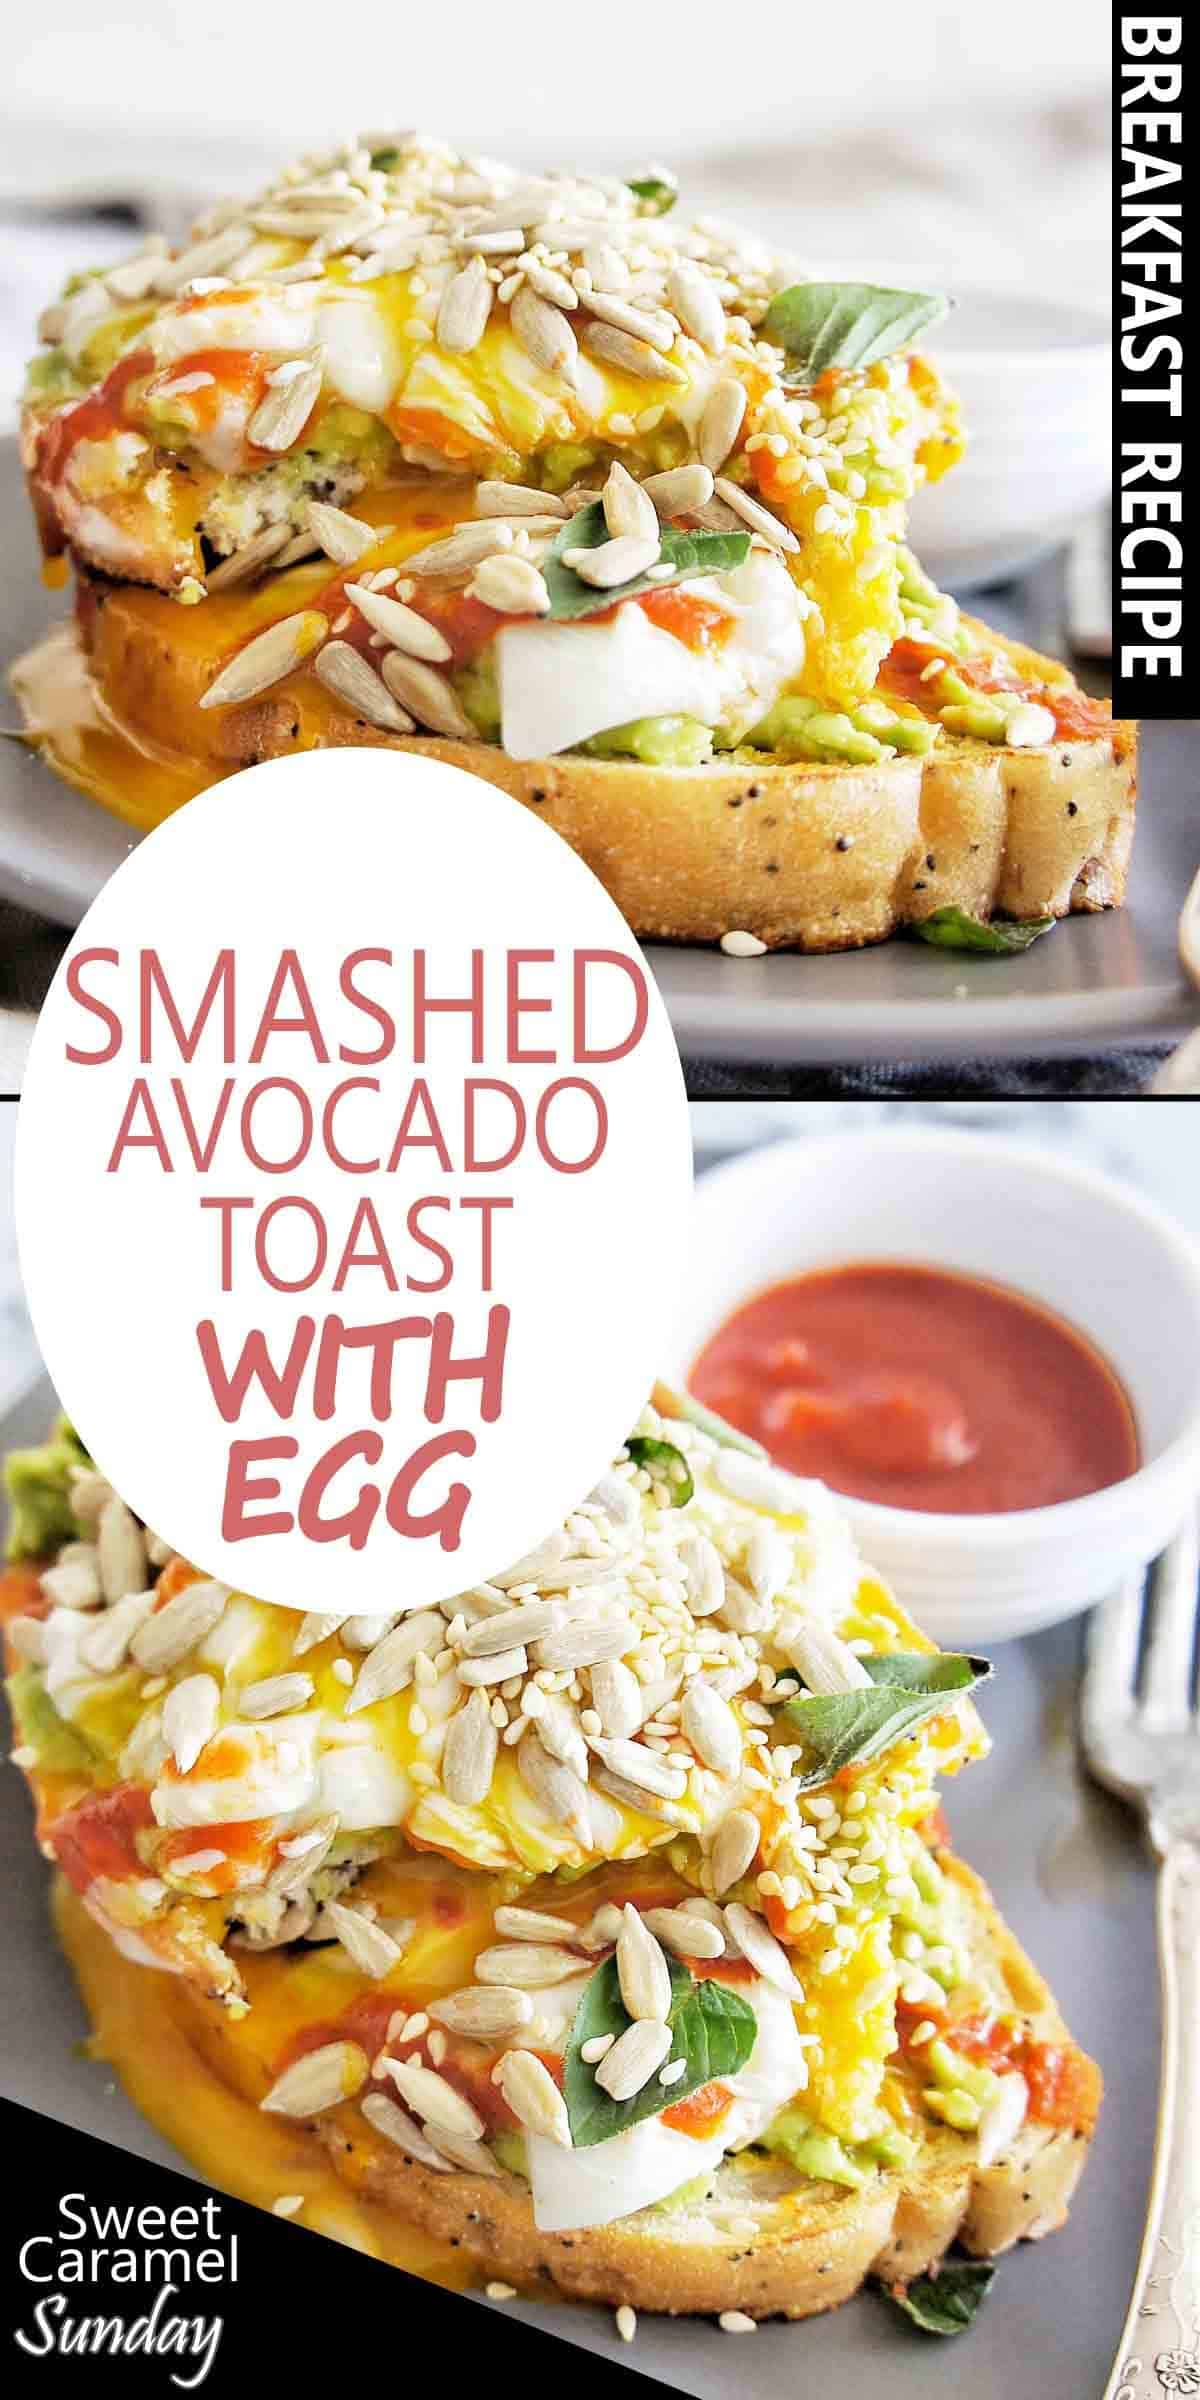 Smashed Avocado Toast with egg and text overlay